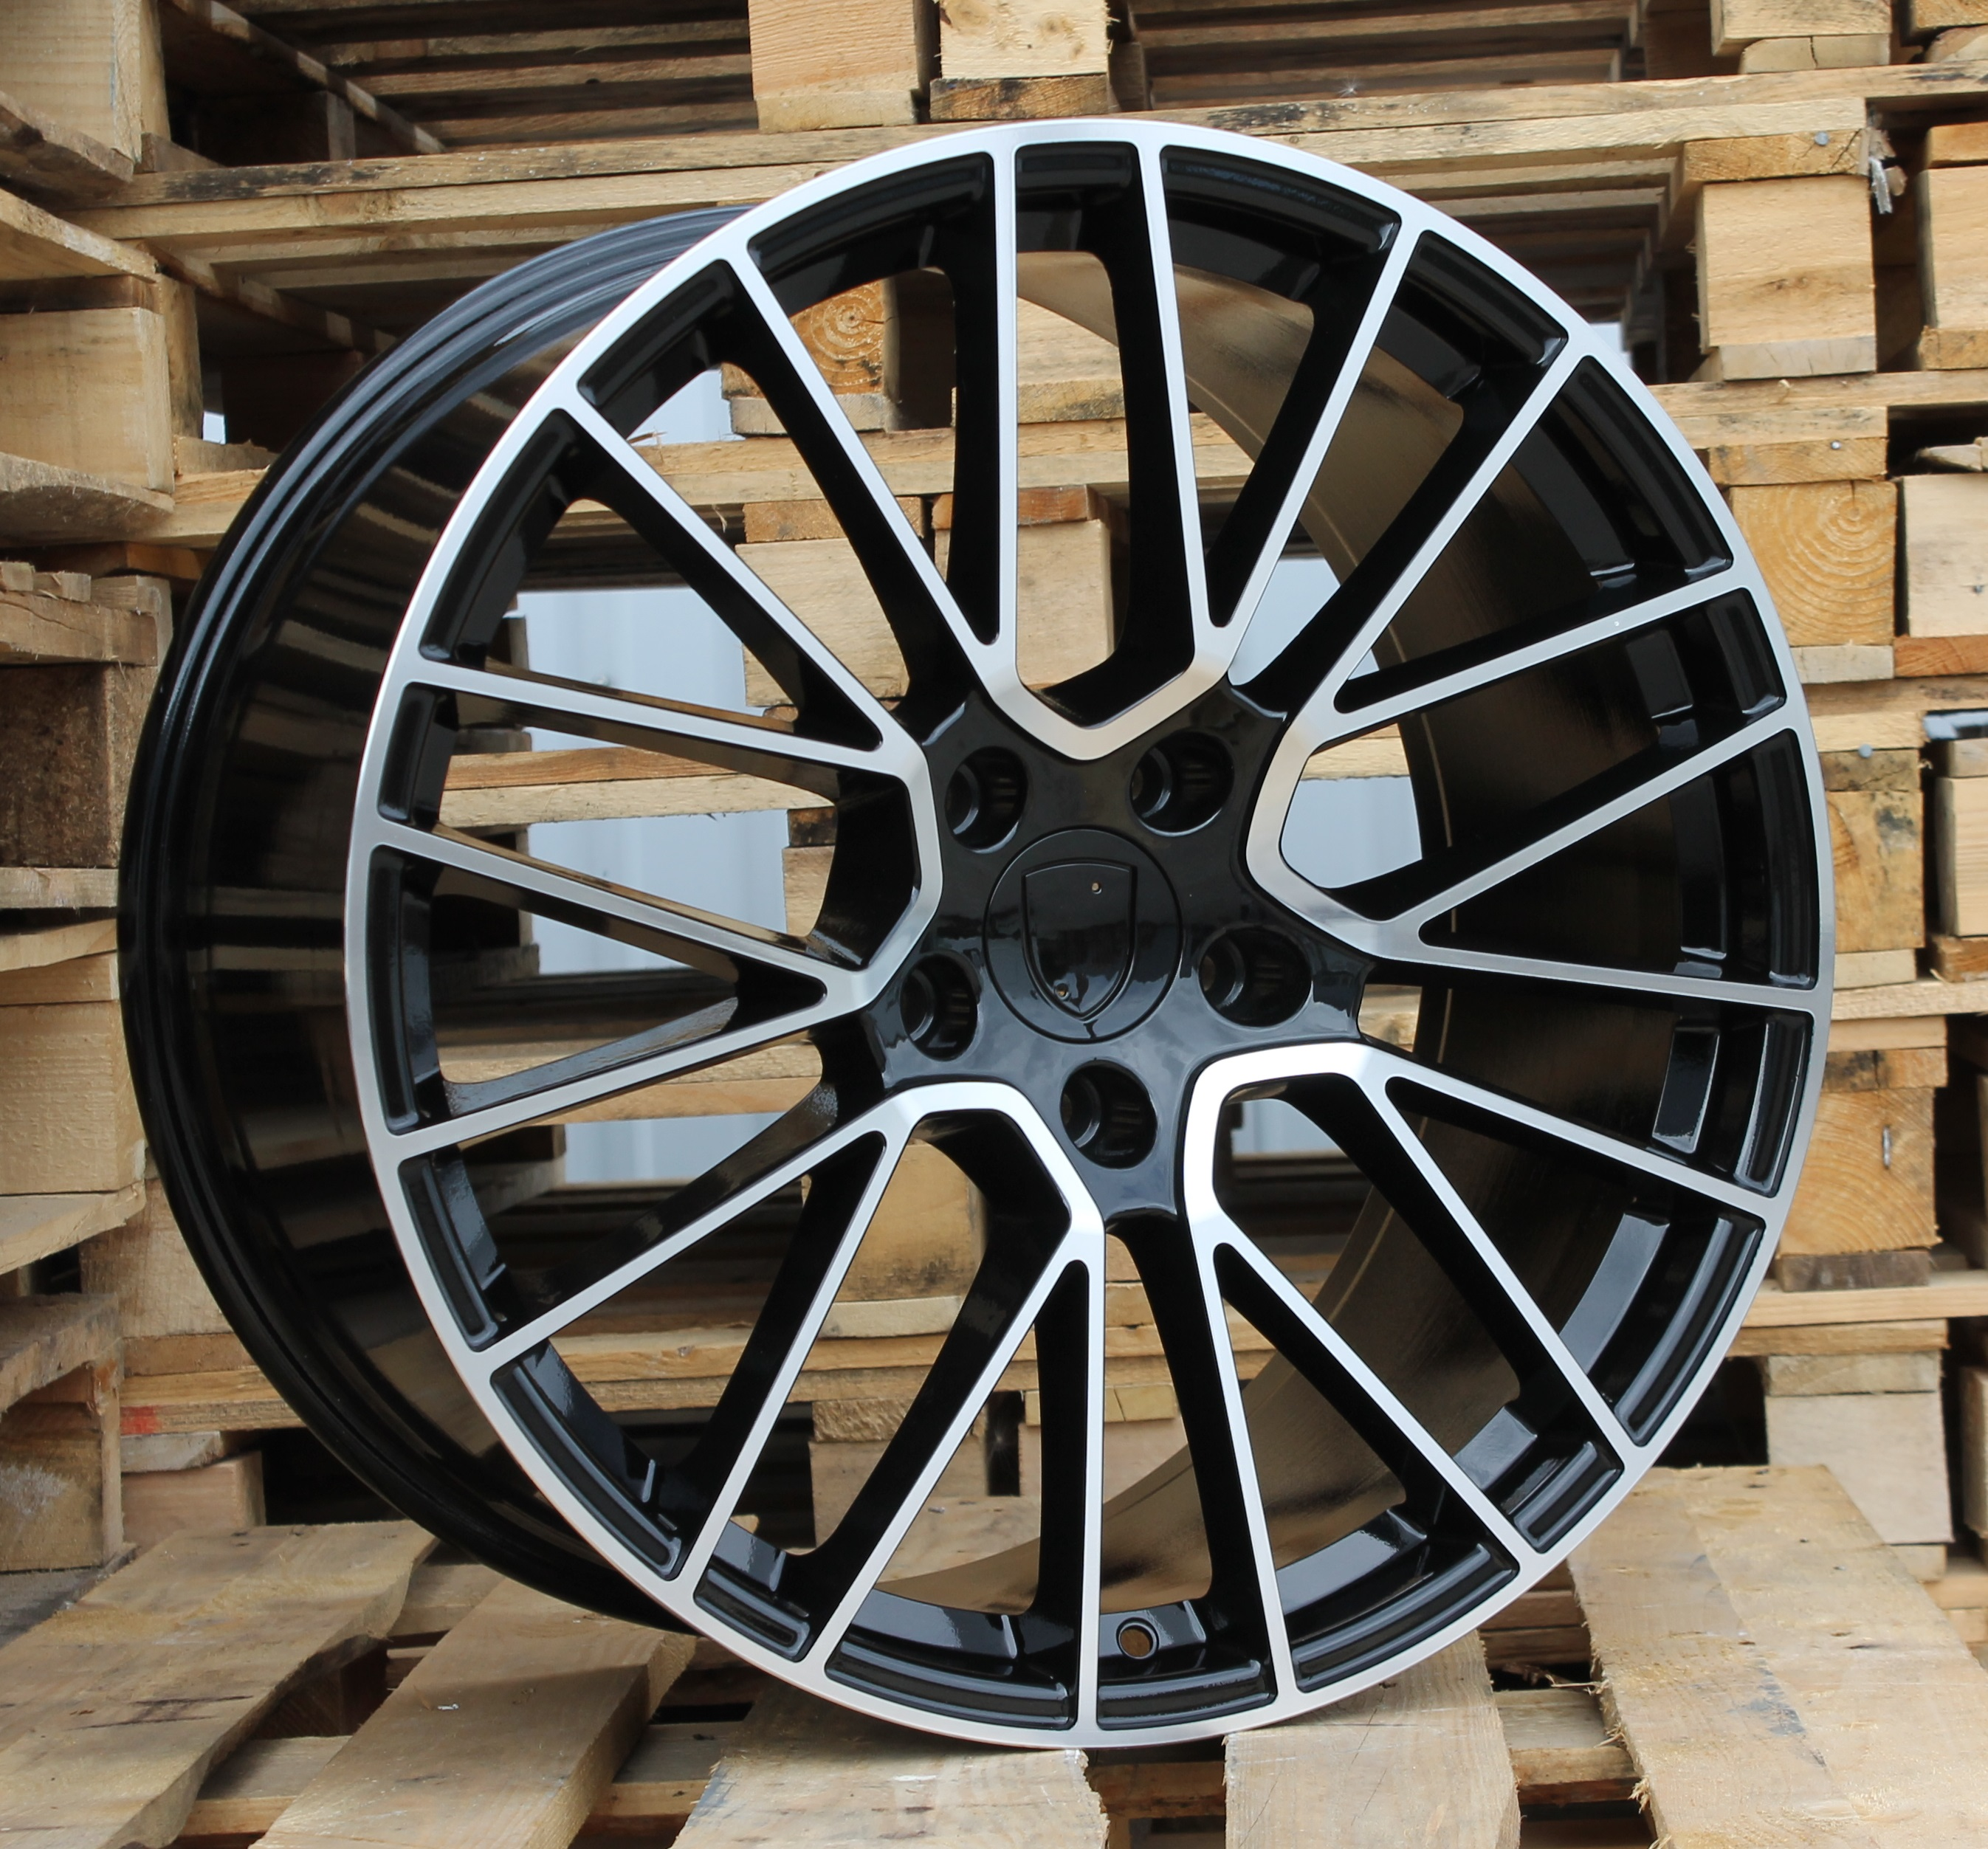 P22X10 5X130 ET48 71.56 FE179 MB+Powder Coating (REAR+FRONT) RWR POR (+5eur) (K5)## 10x22 ET48 5x130